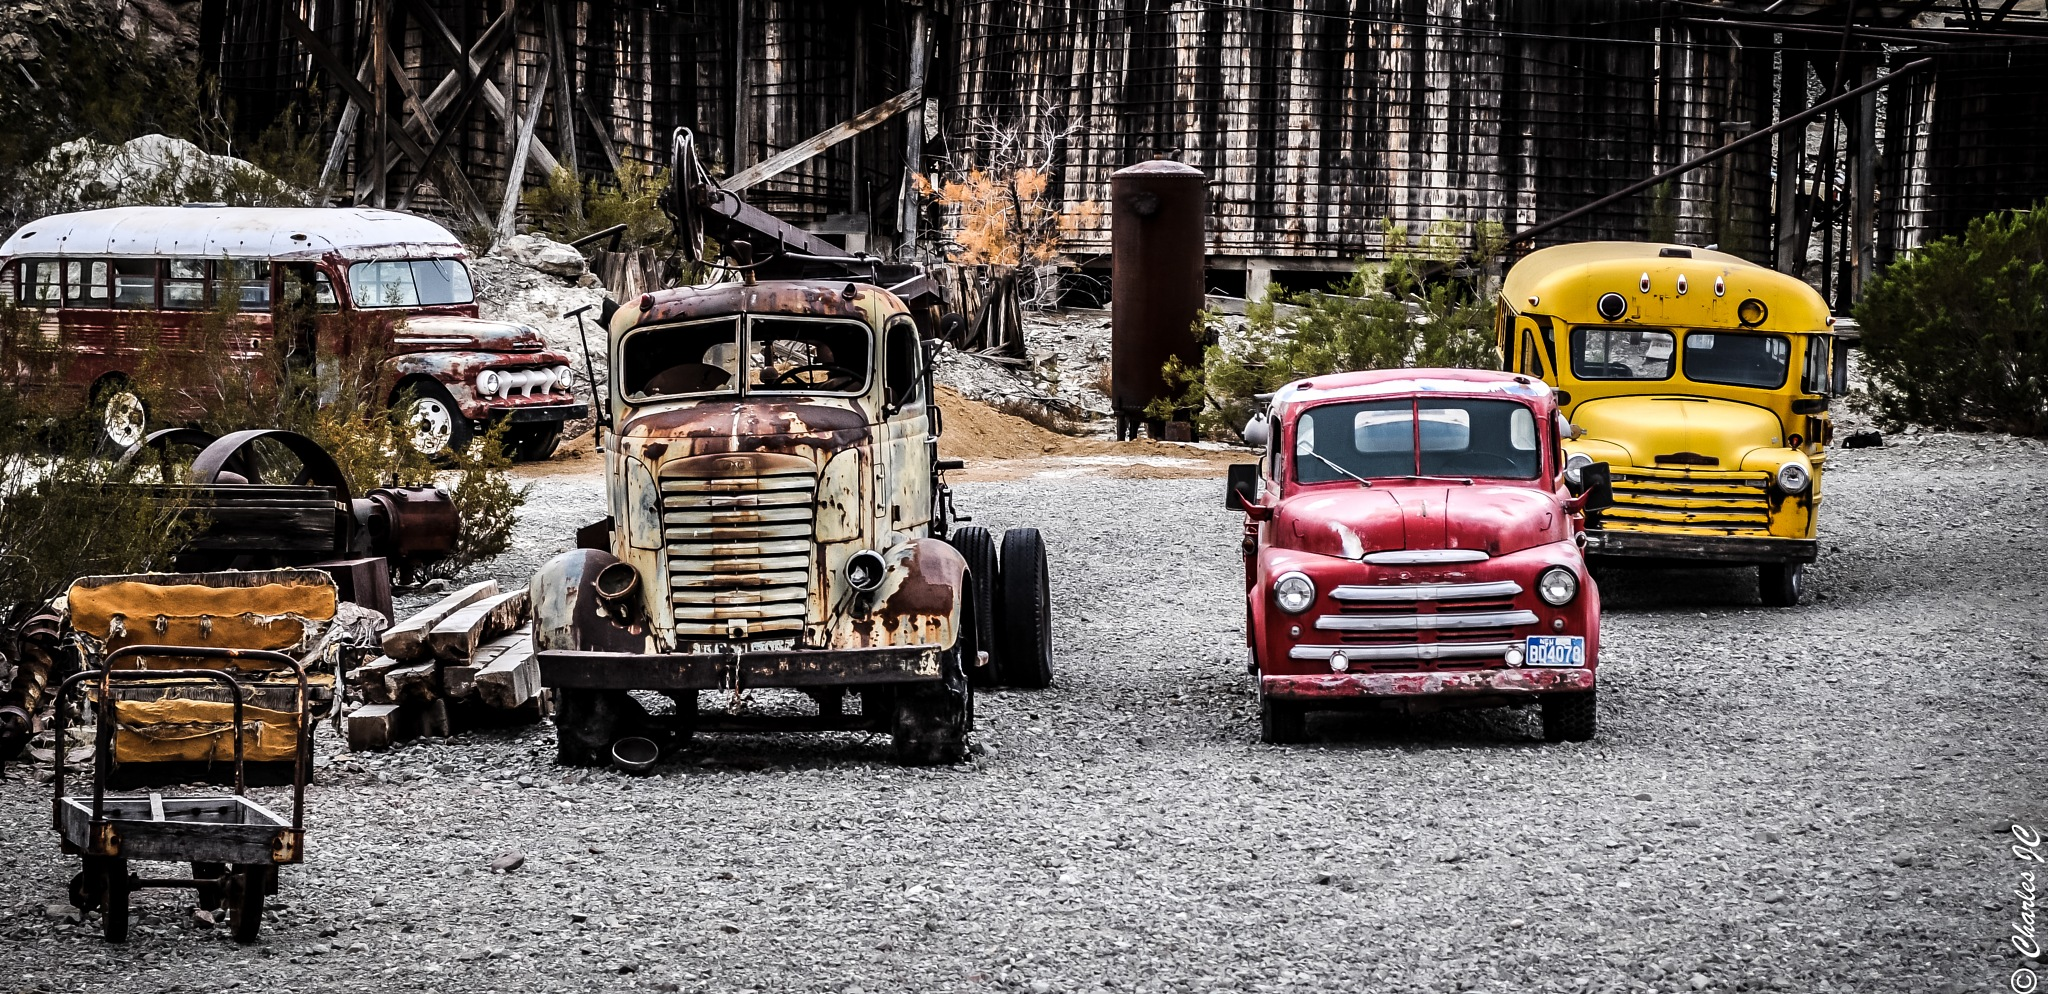 Rusty Trucks and buses by carlosf_m